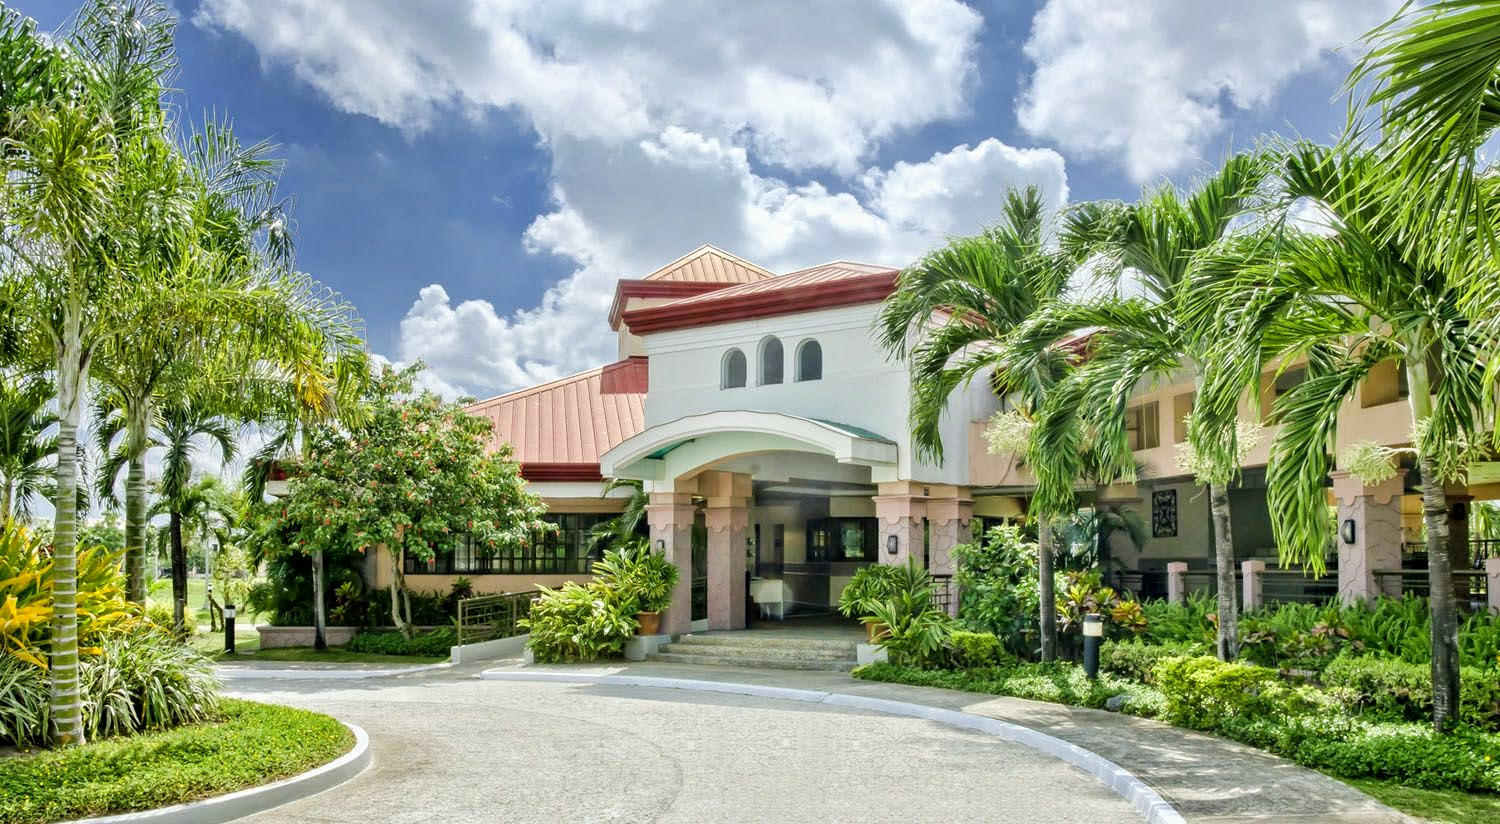 Heritage Angeles clubhouse